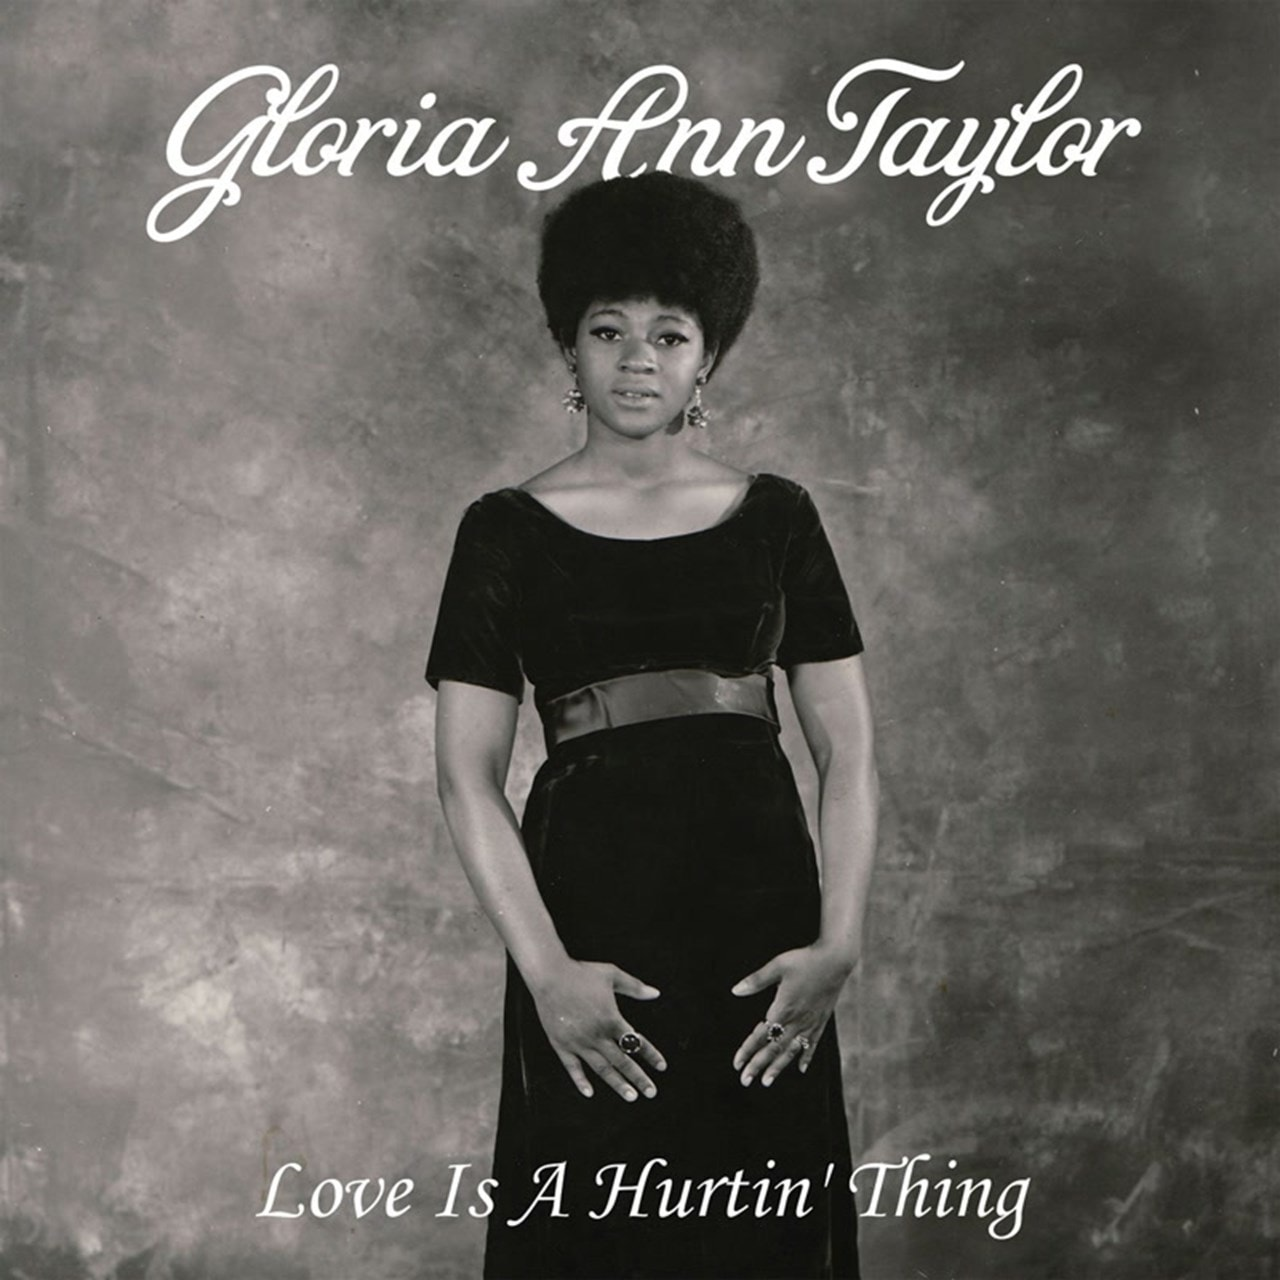 Love Is a Hurtin' Thing - 1